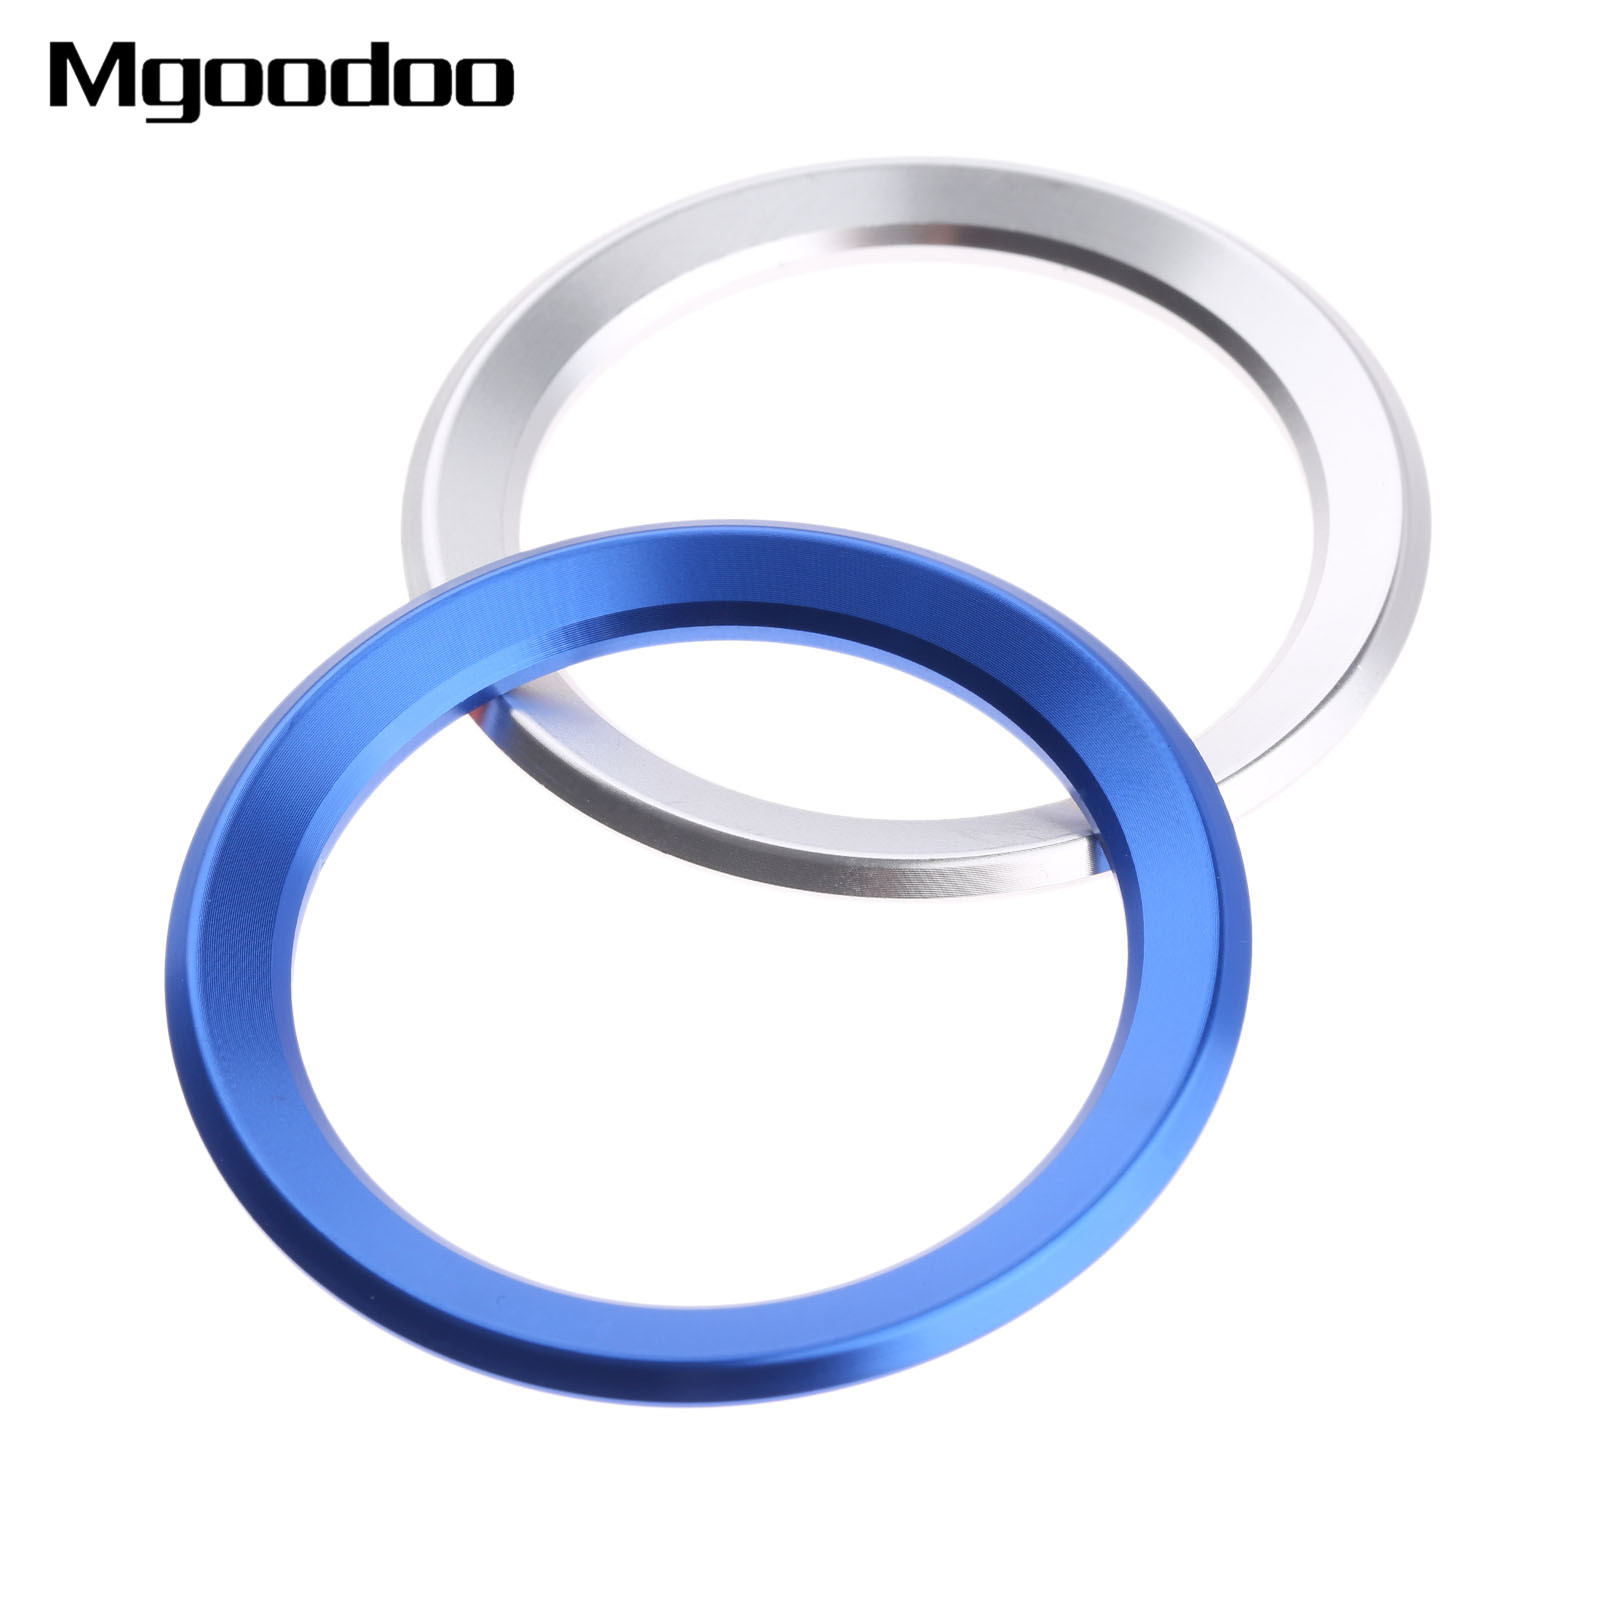 1x Car-styling Car Steering Wheel Decoration Circle Cover Sticker For BMW New 1 3 4 5 7 Series M3 M5 X1 X3 X5 X6 Aluminium Alloy